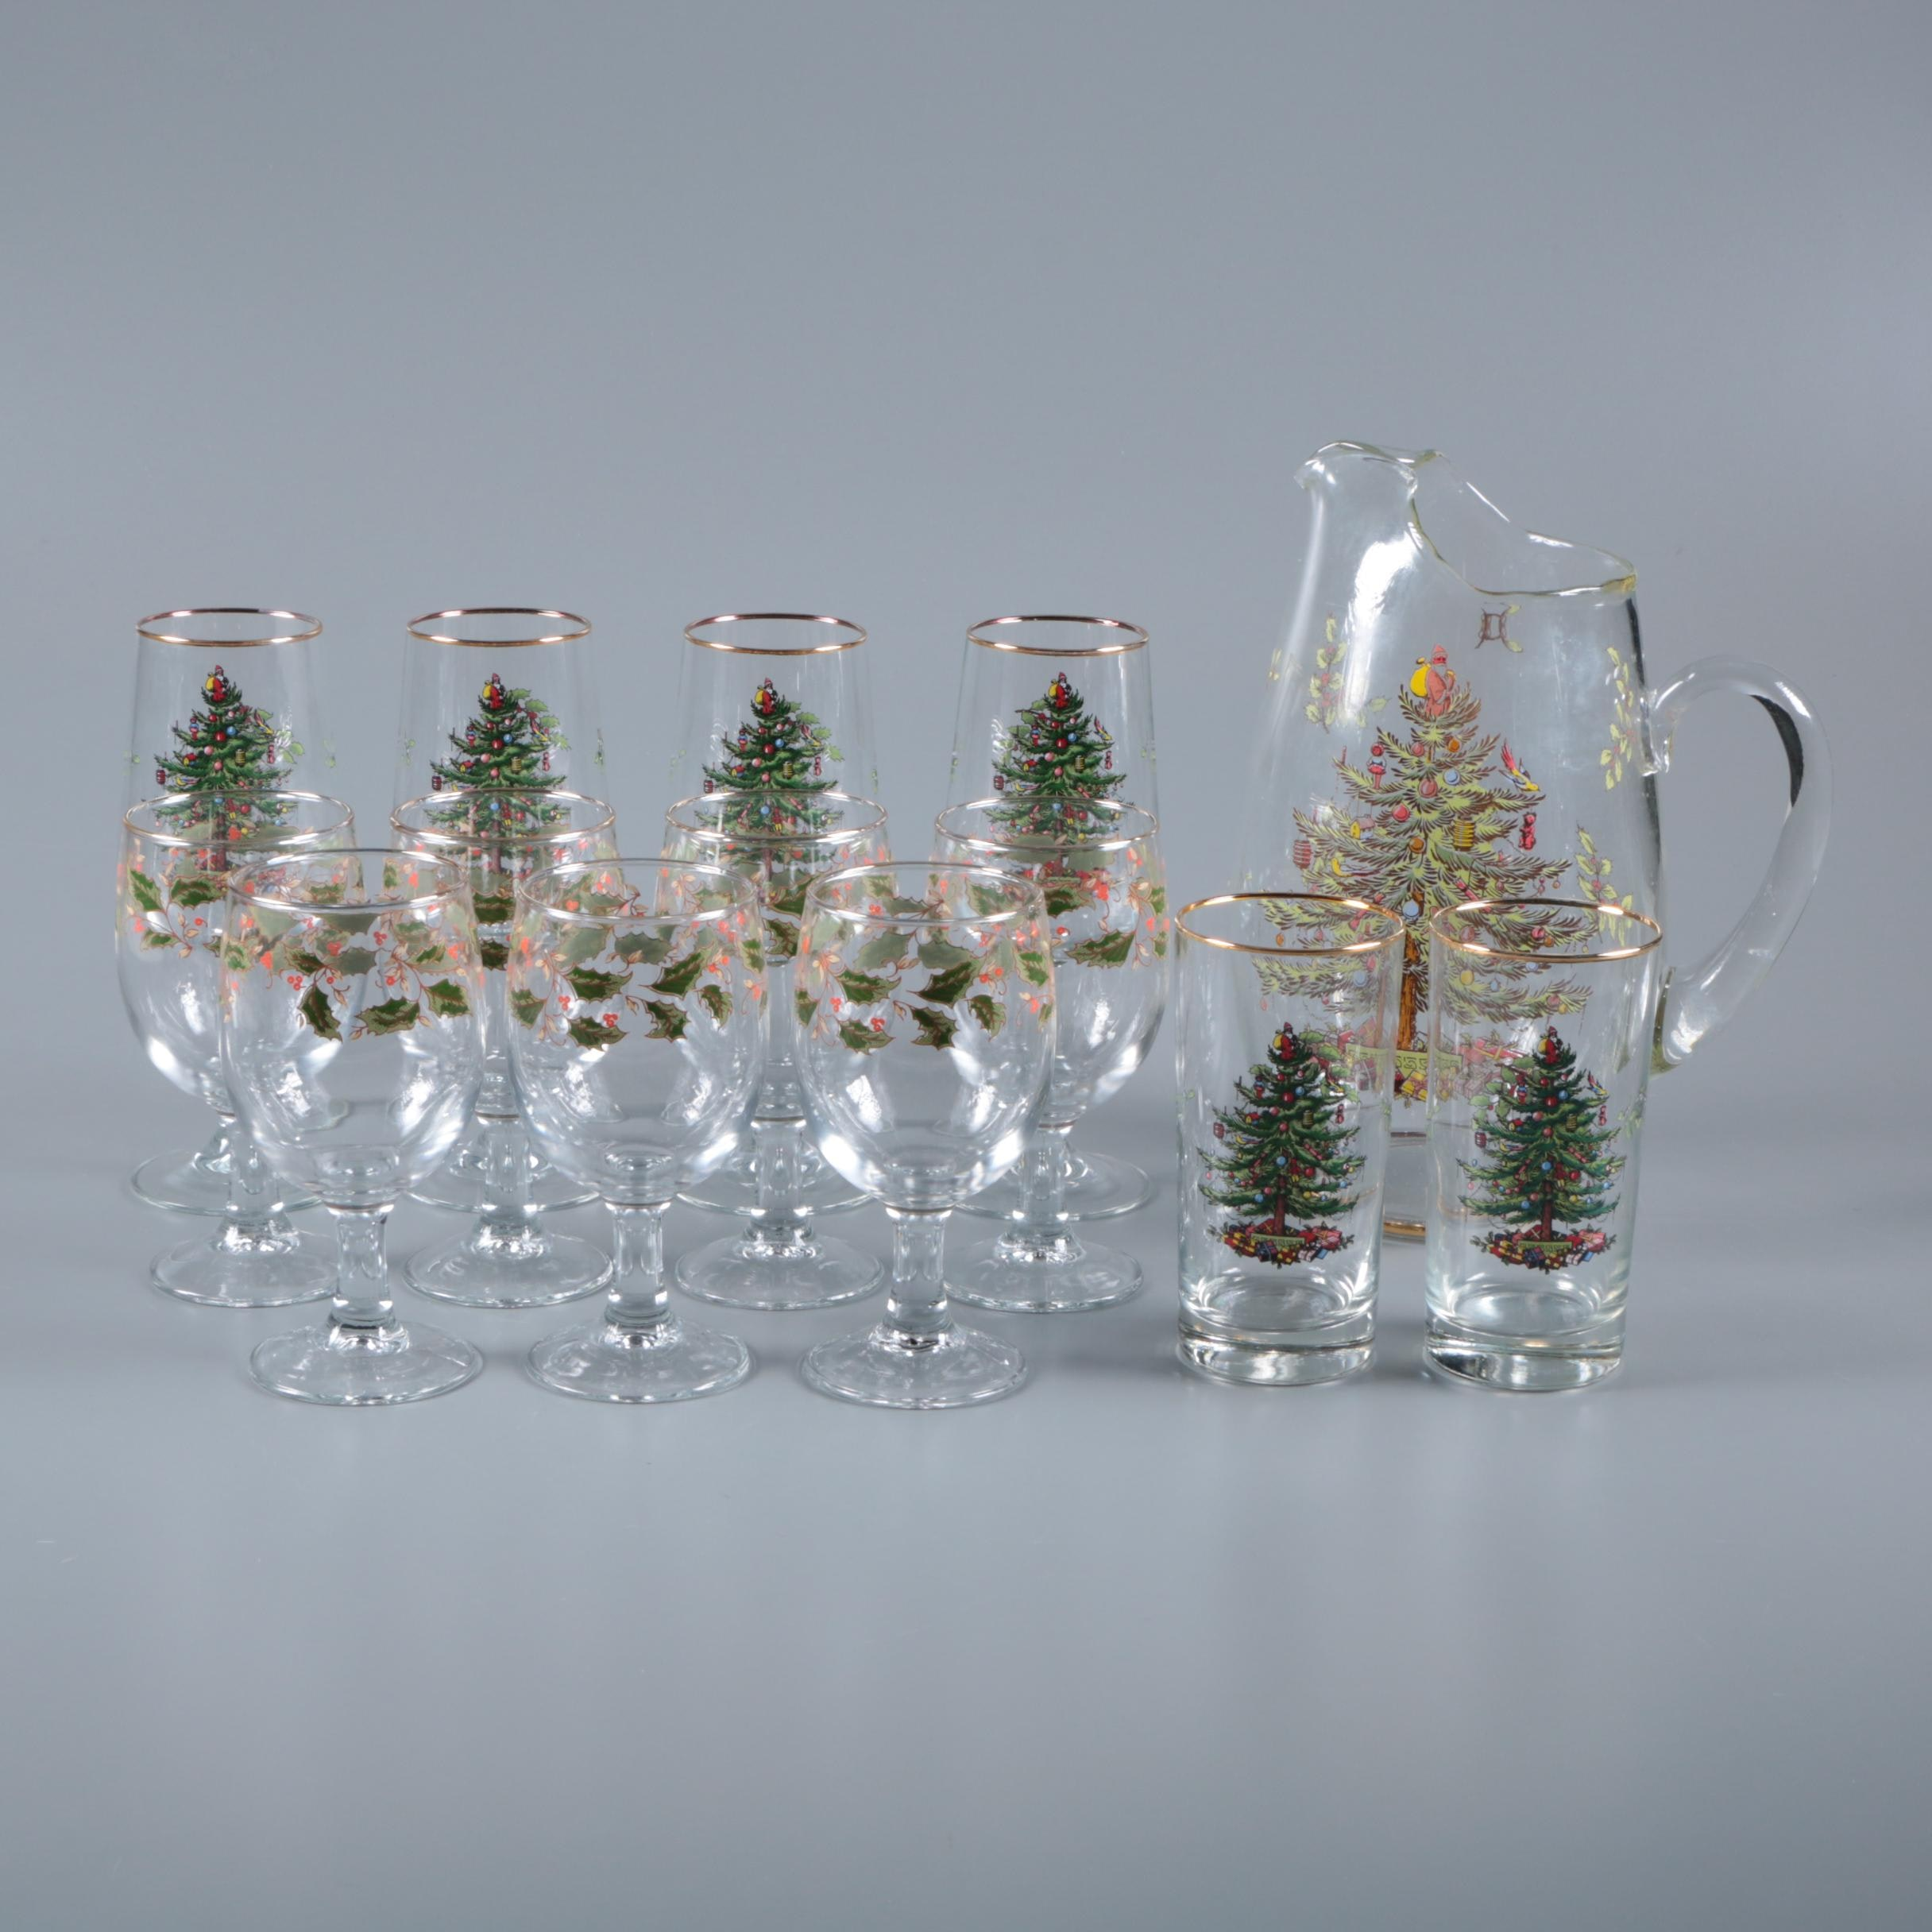 """Spode """"Christmas Tree"""" Stemware and Pitcher with Holly Leaves Goblets"""